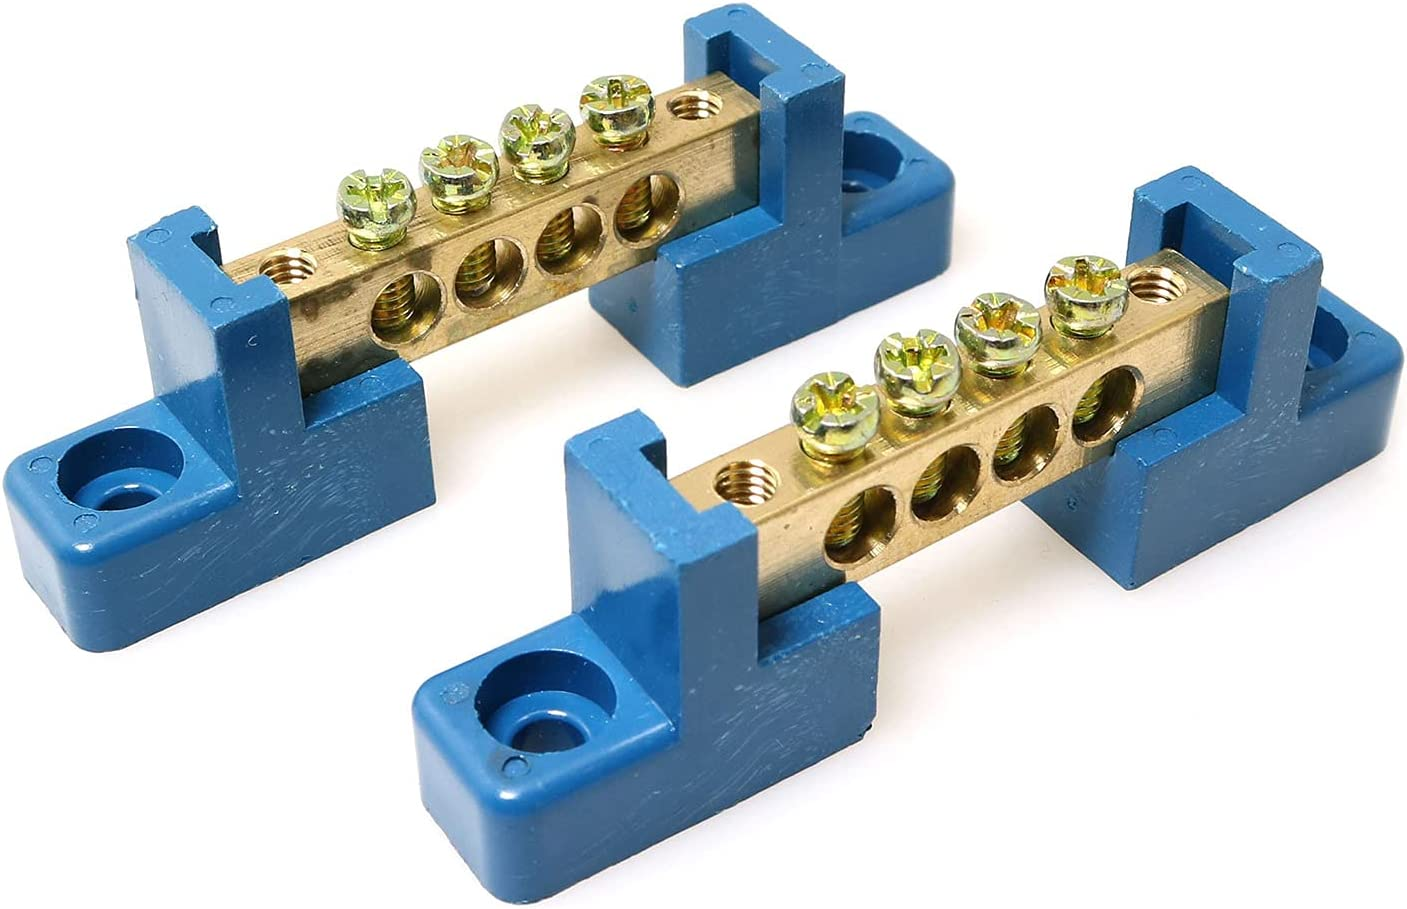 RLECS Super sale Selling and selling 2pcs Terminal Bus Bar 4 Block Positions Brass Wir